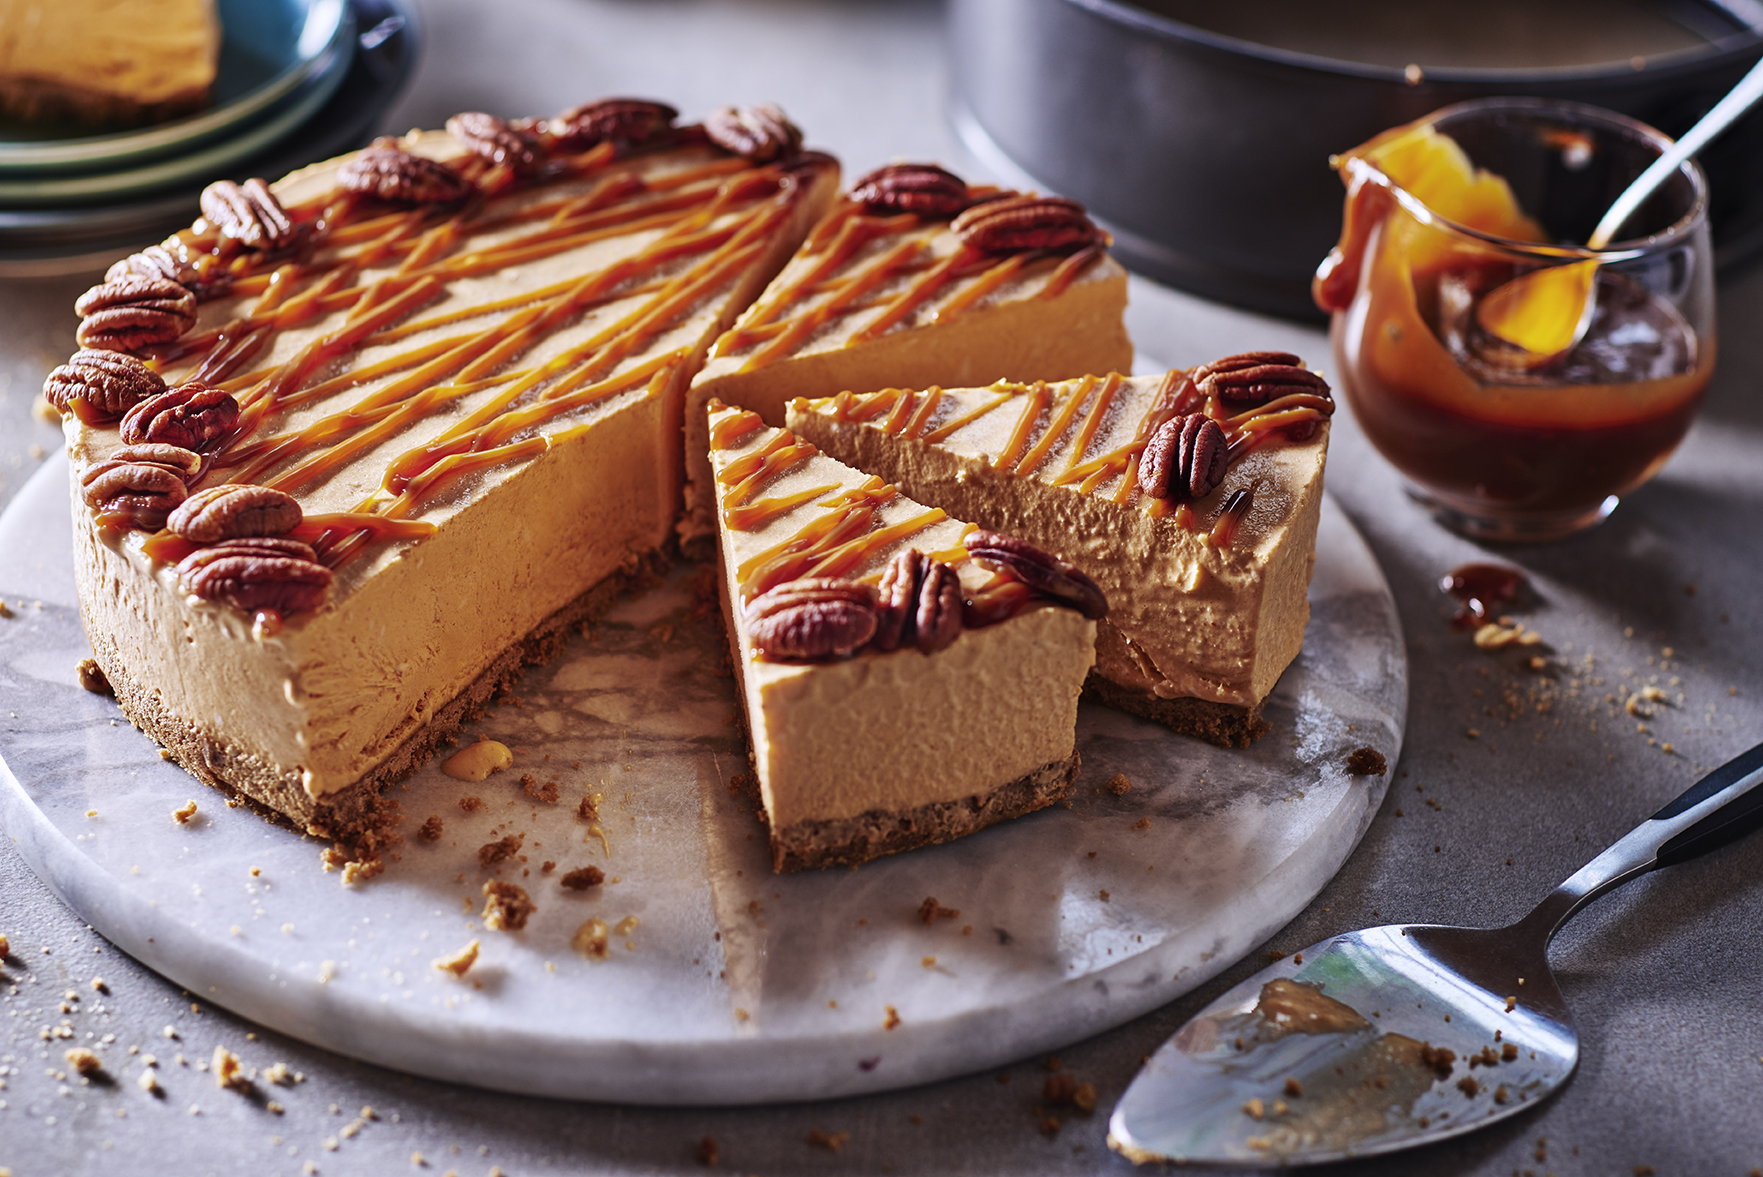 37-Pumpkin Spce Ice Cream Cheesecake_084_retouch_v1.jpg